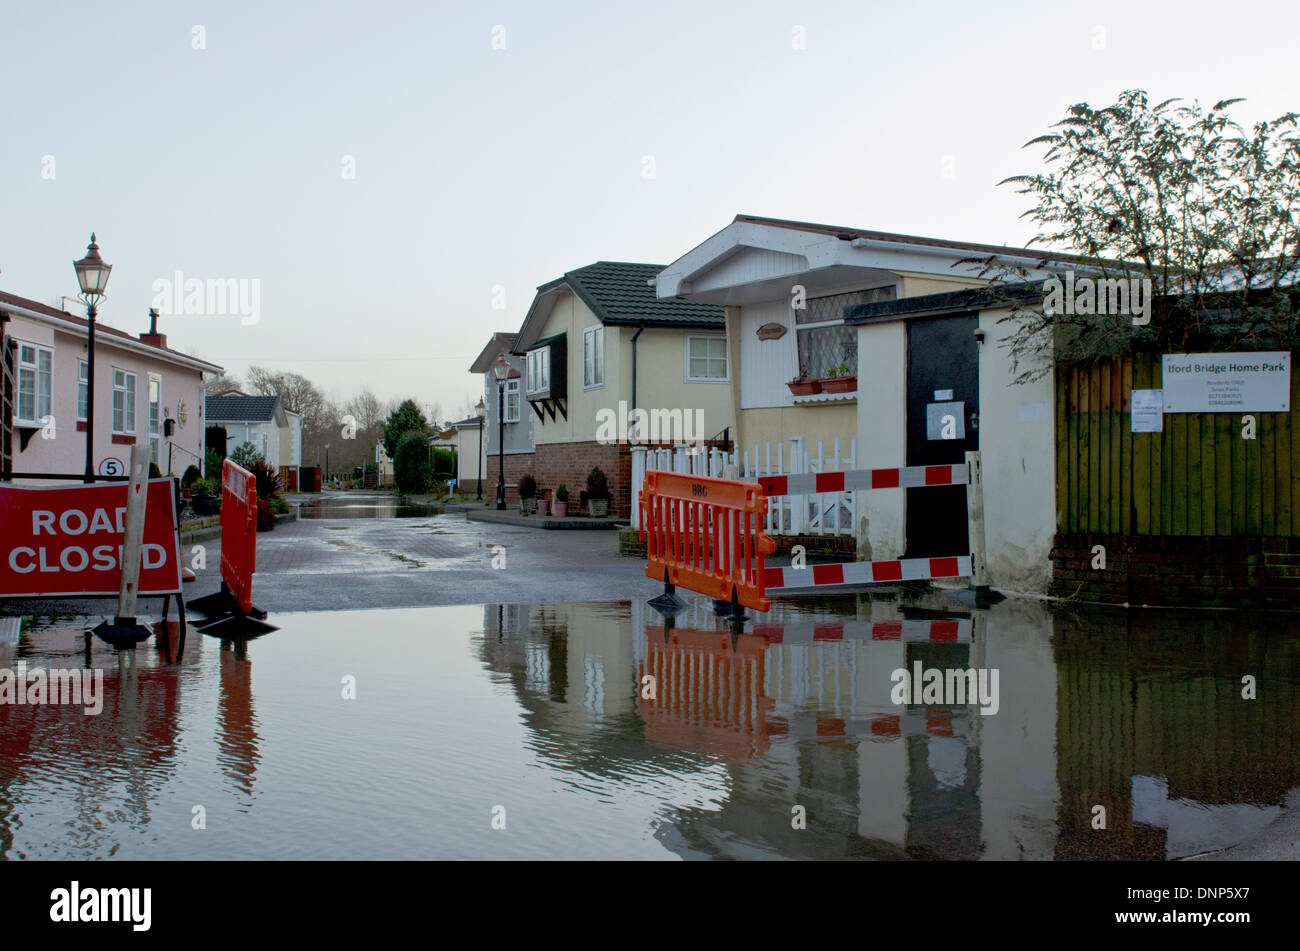 Iford, Christchurch, Dorset, UK. 3rd January 2014. Residents evacuated from the Iford Bridge Home Park site. Water levels still rising - Stock Image